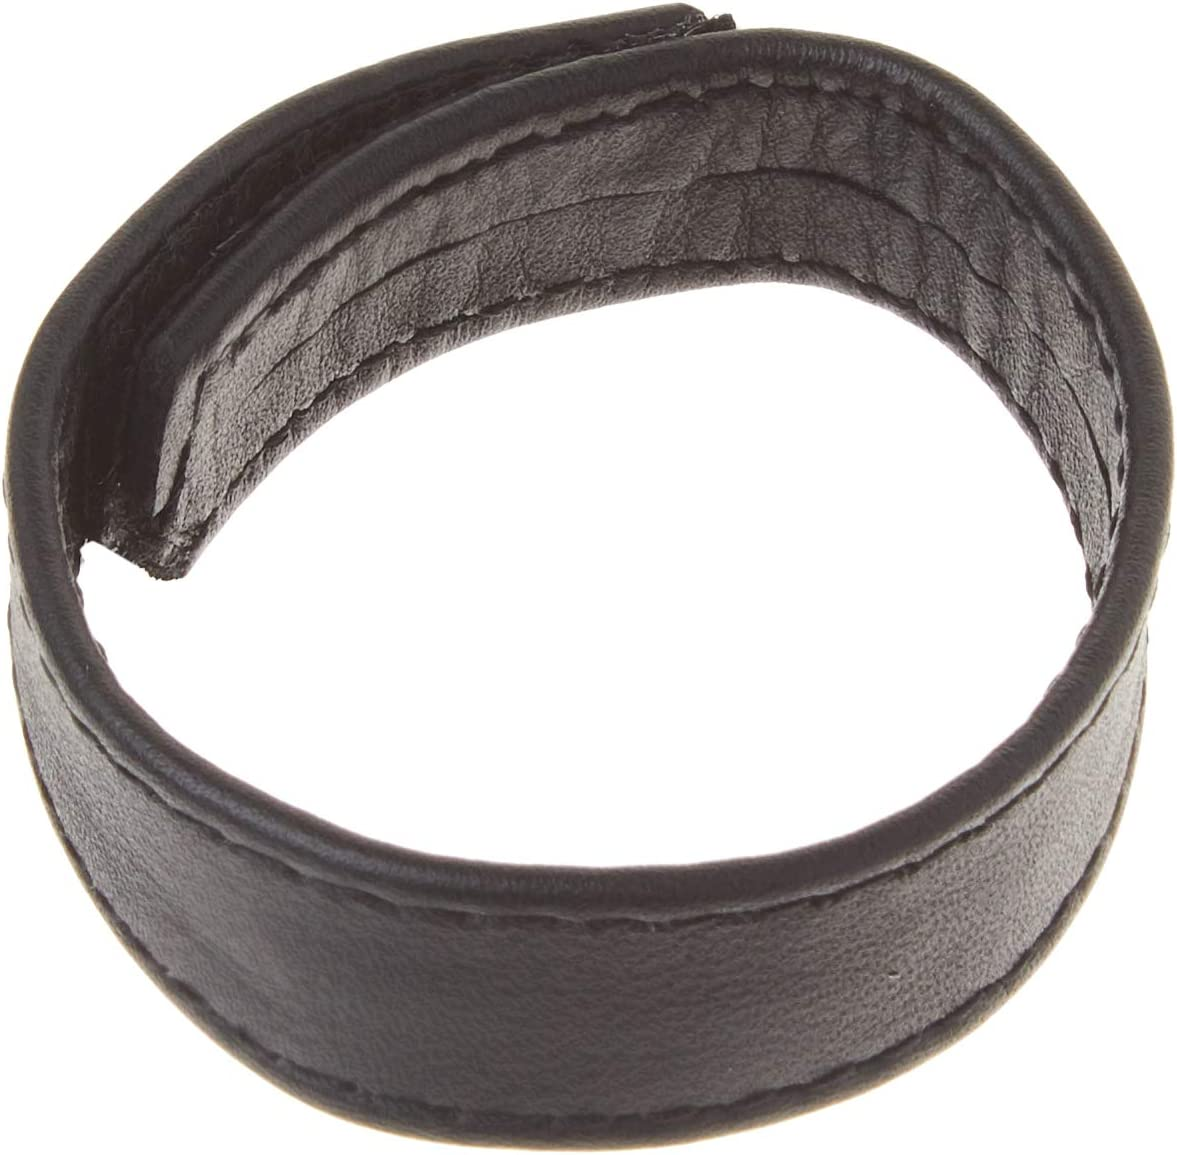 Sale wholesale Strict Leather Velcro Ring Cock